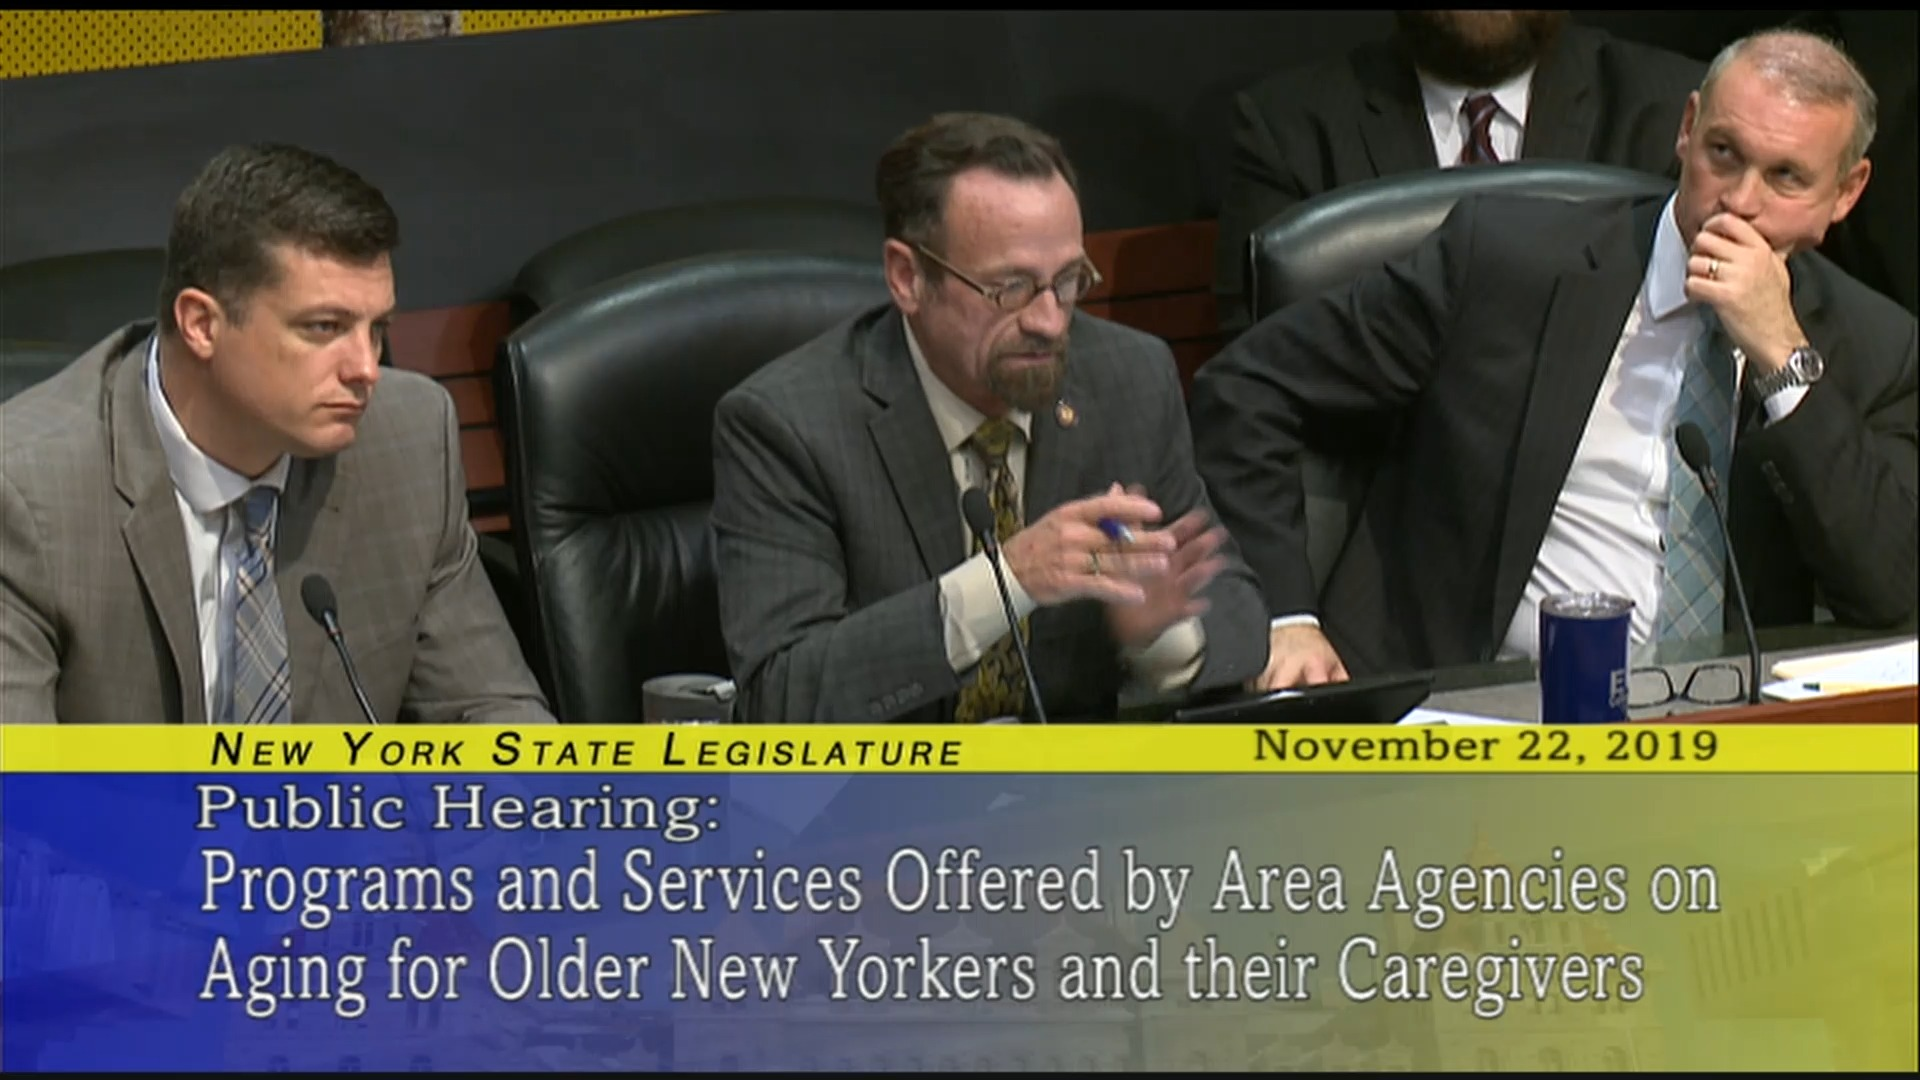 Public Hearing On Programs And Services For Aging New Yorkers (3)